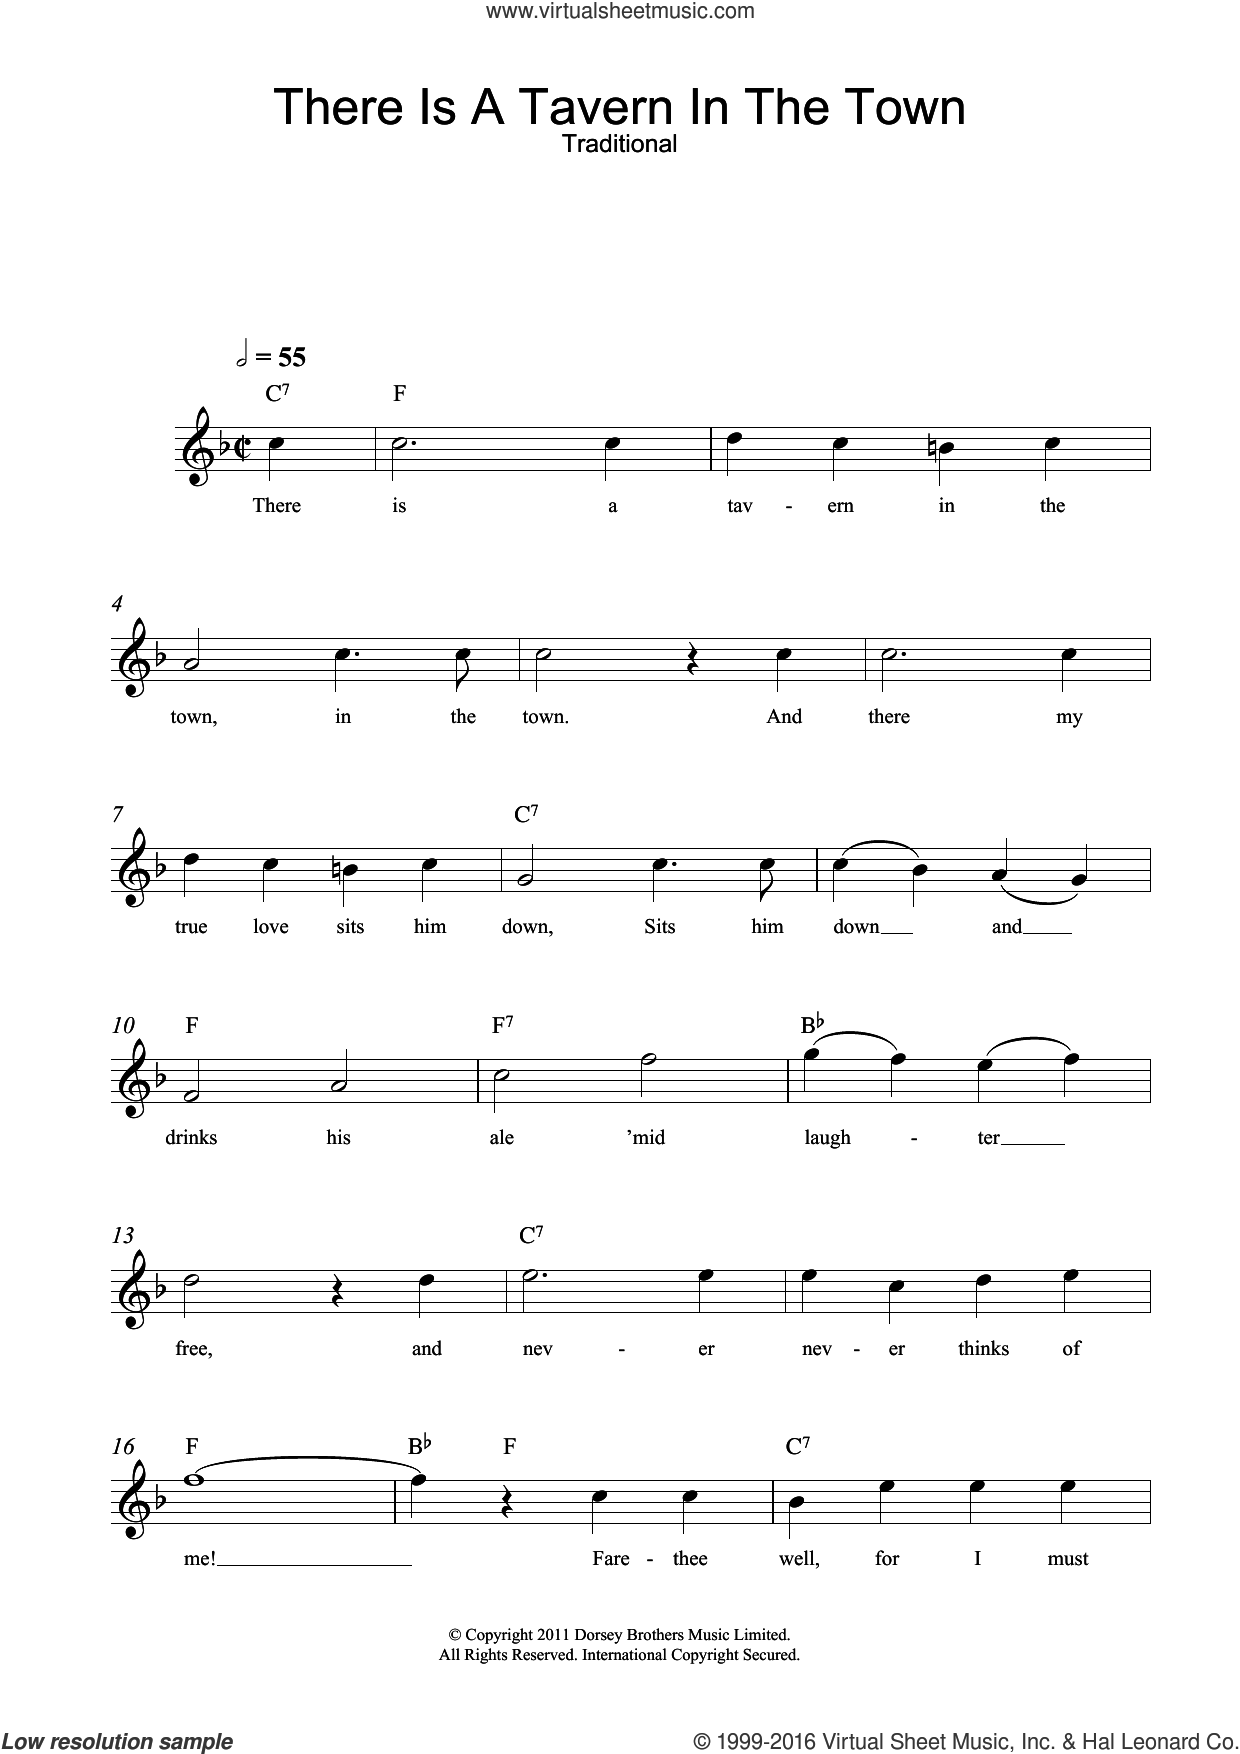 There Is A Tavern In The Town sheet music for voice and other instruments (fake book), intermediate voice. Score Image Preview.